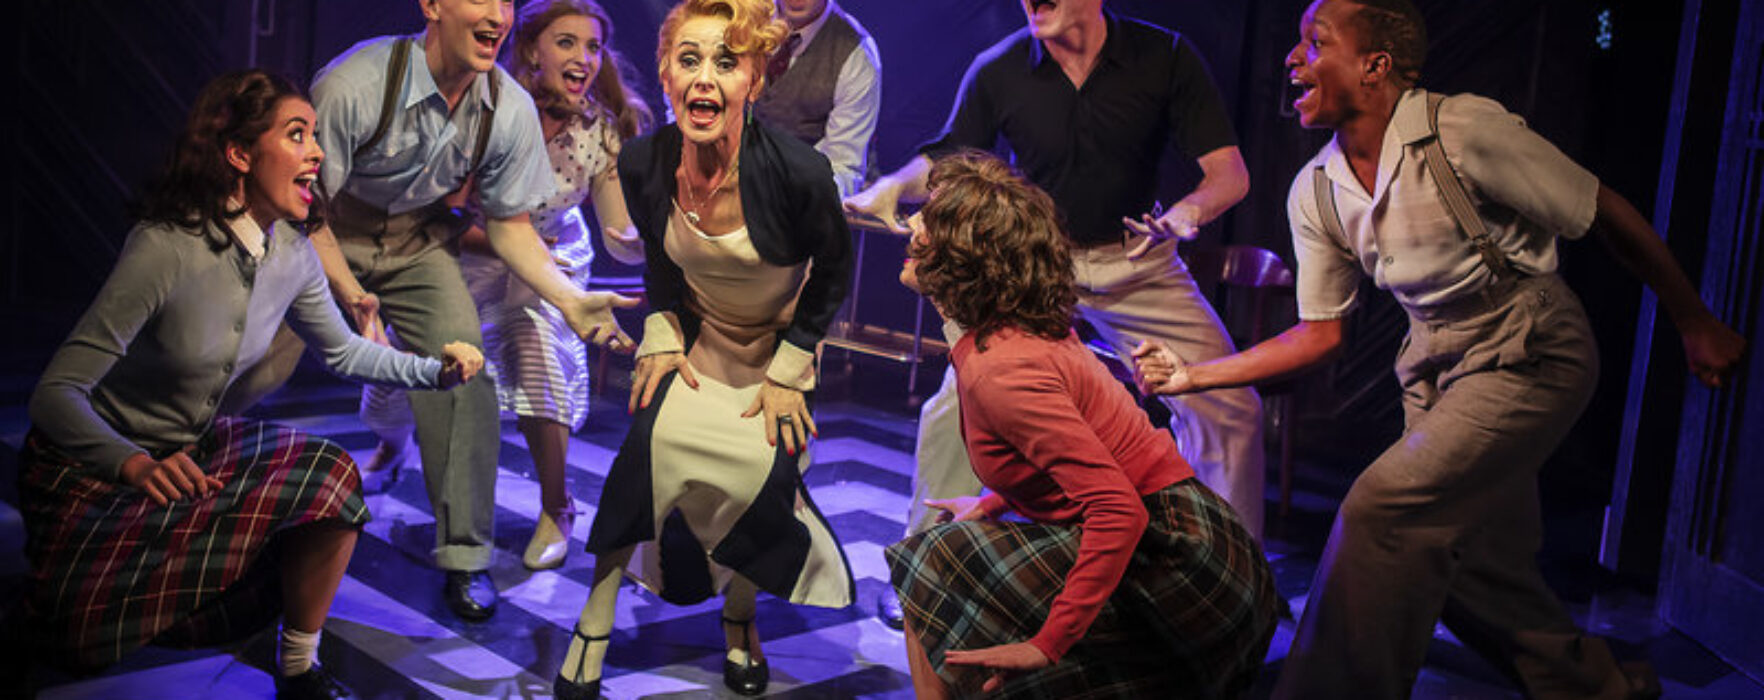 REVIEWED: MAME at Hope Mill Theatre, Manchester